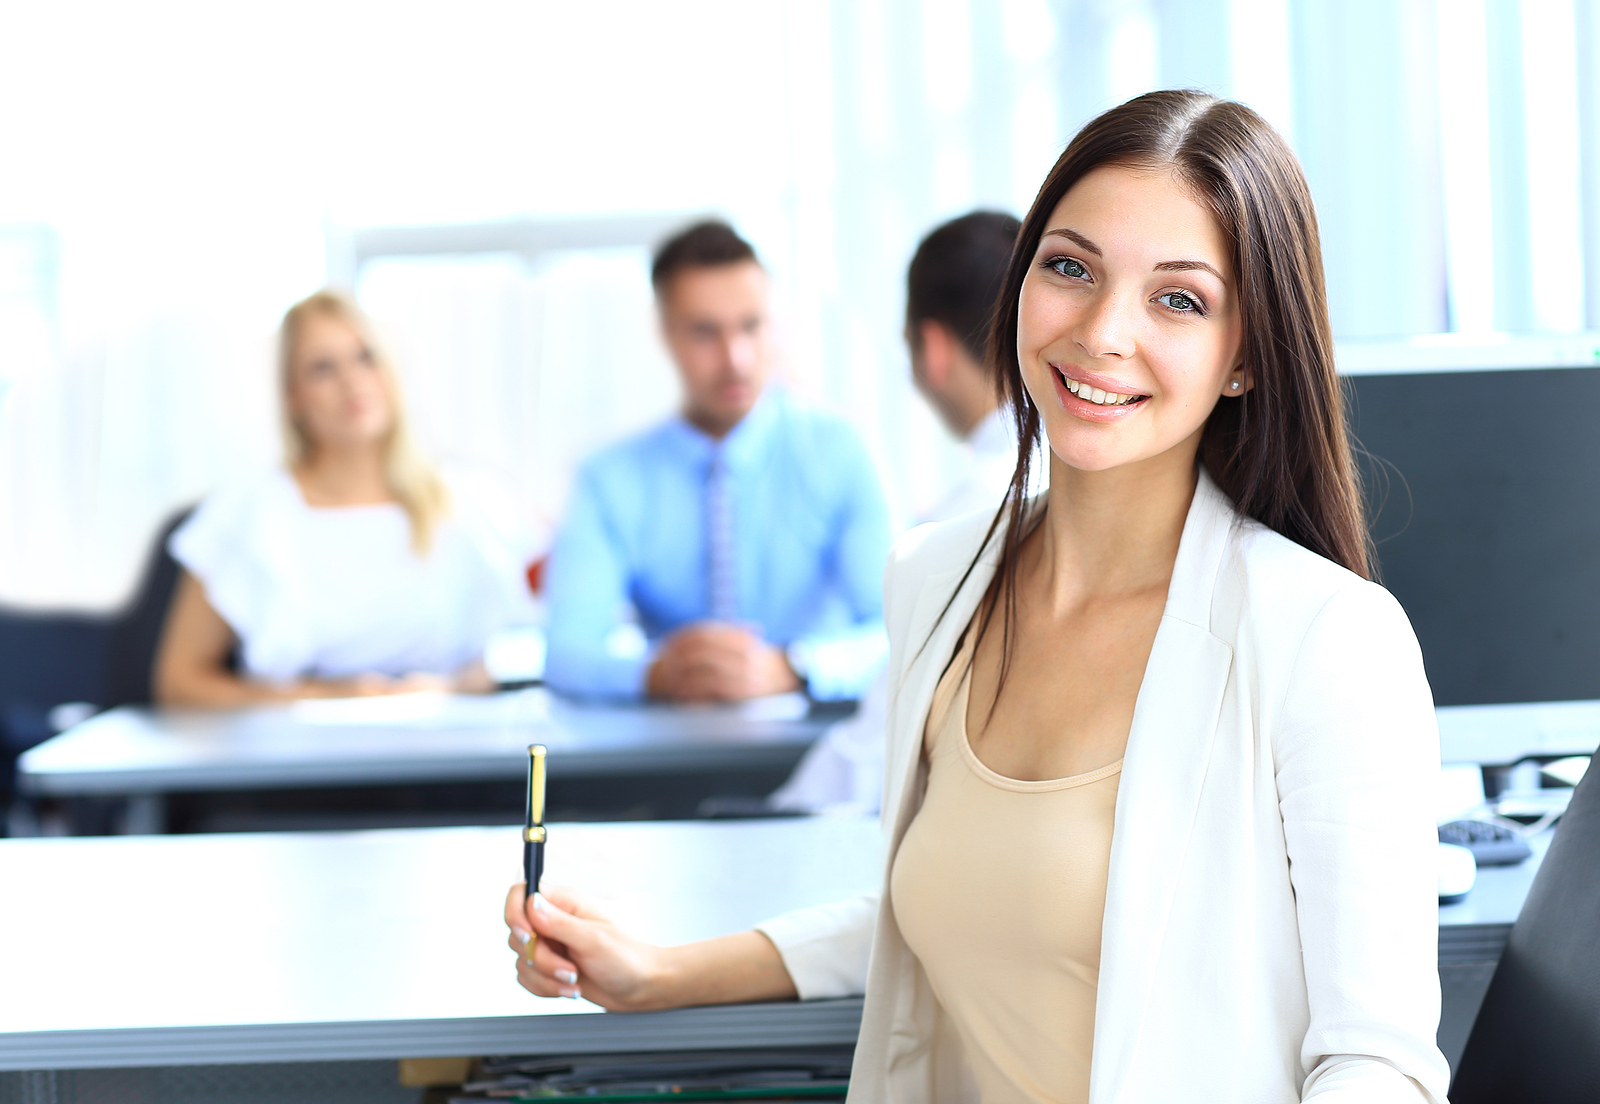 bigstock-business-woman-with-her-team-a-48958436.jpg